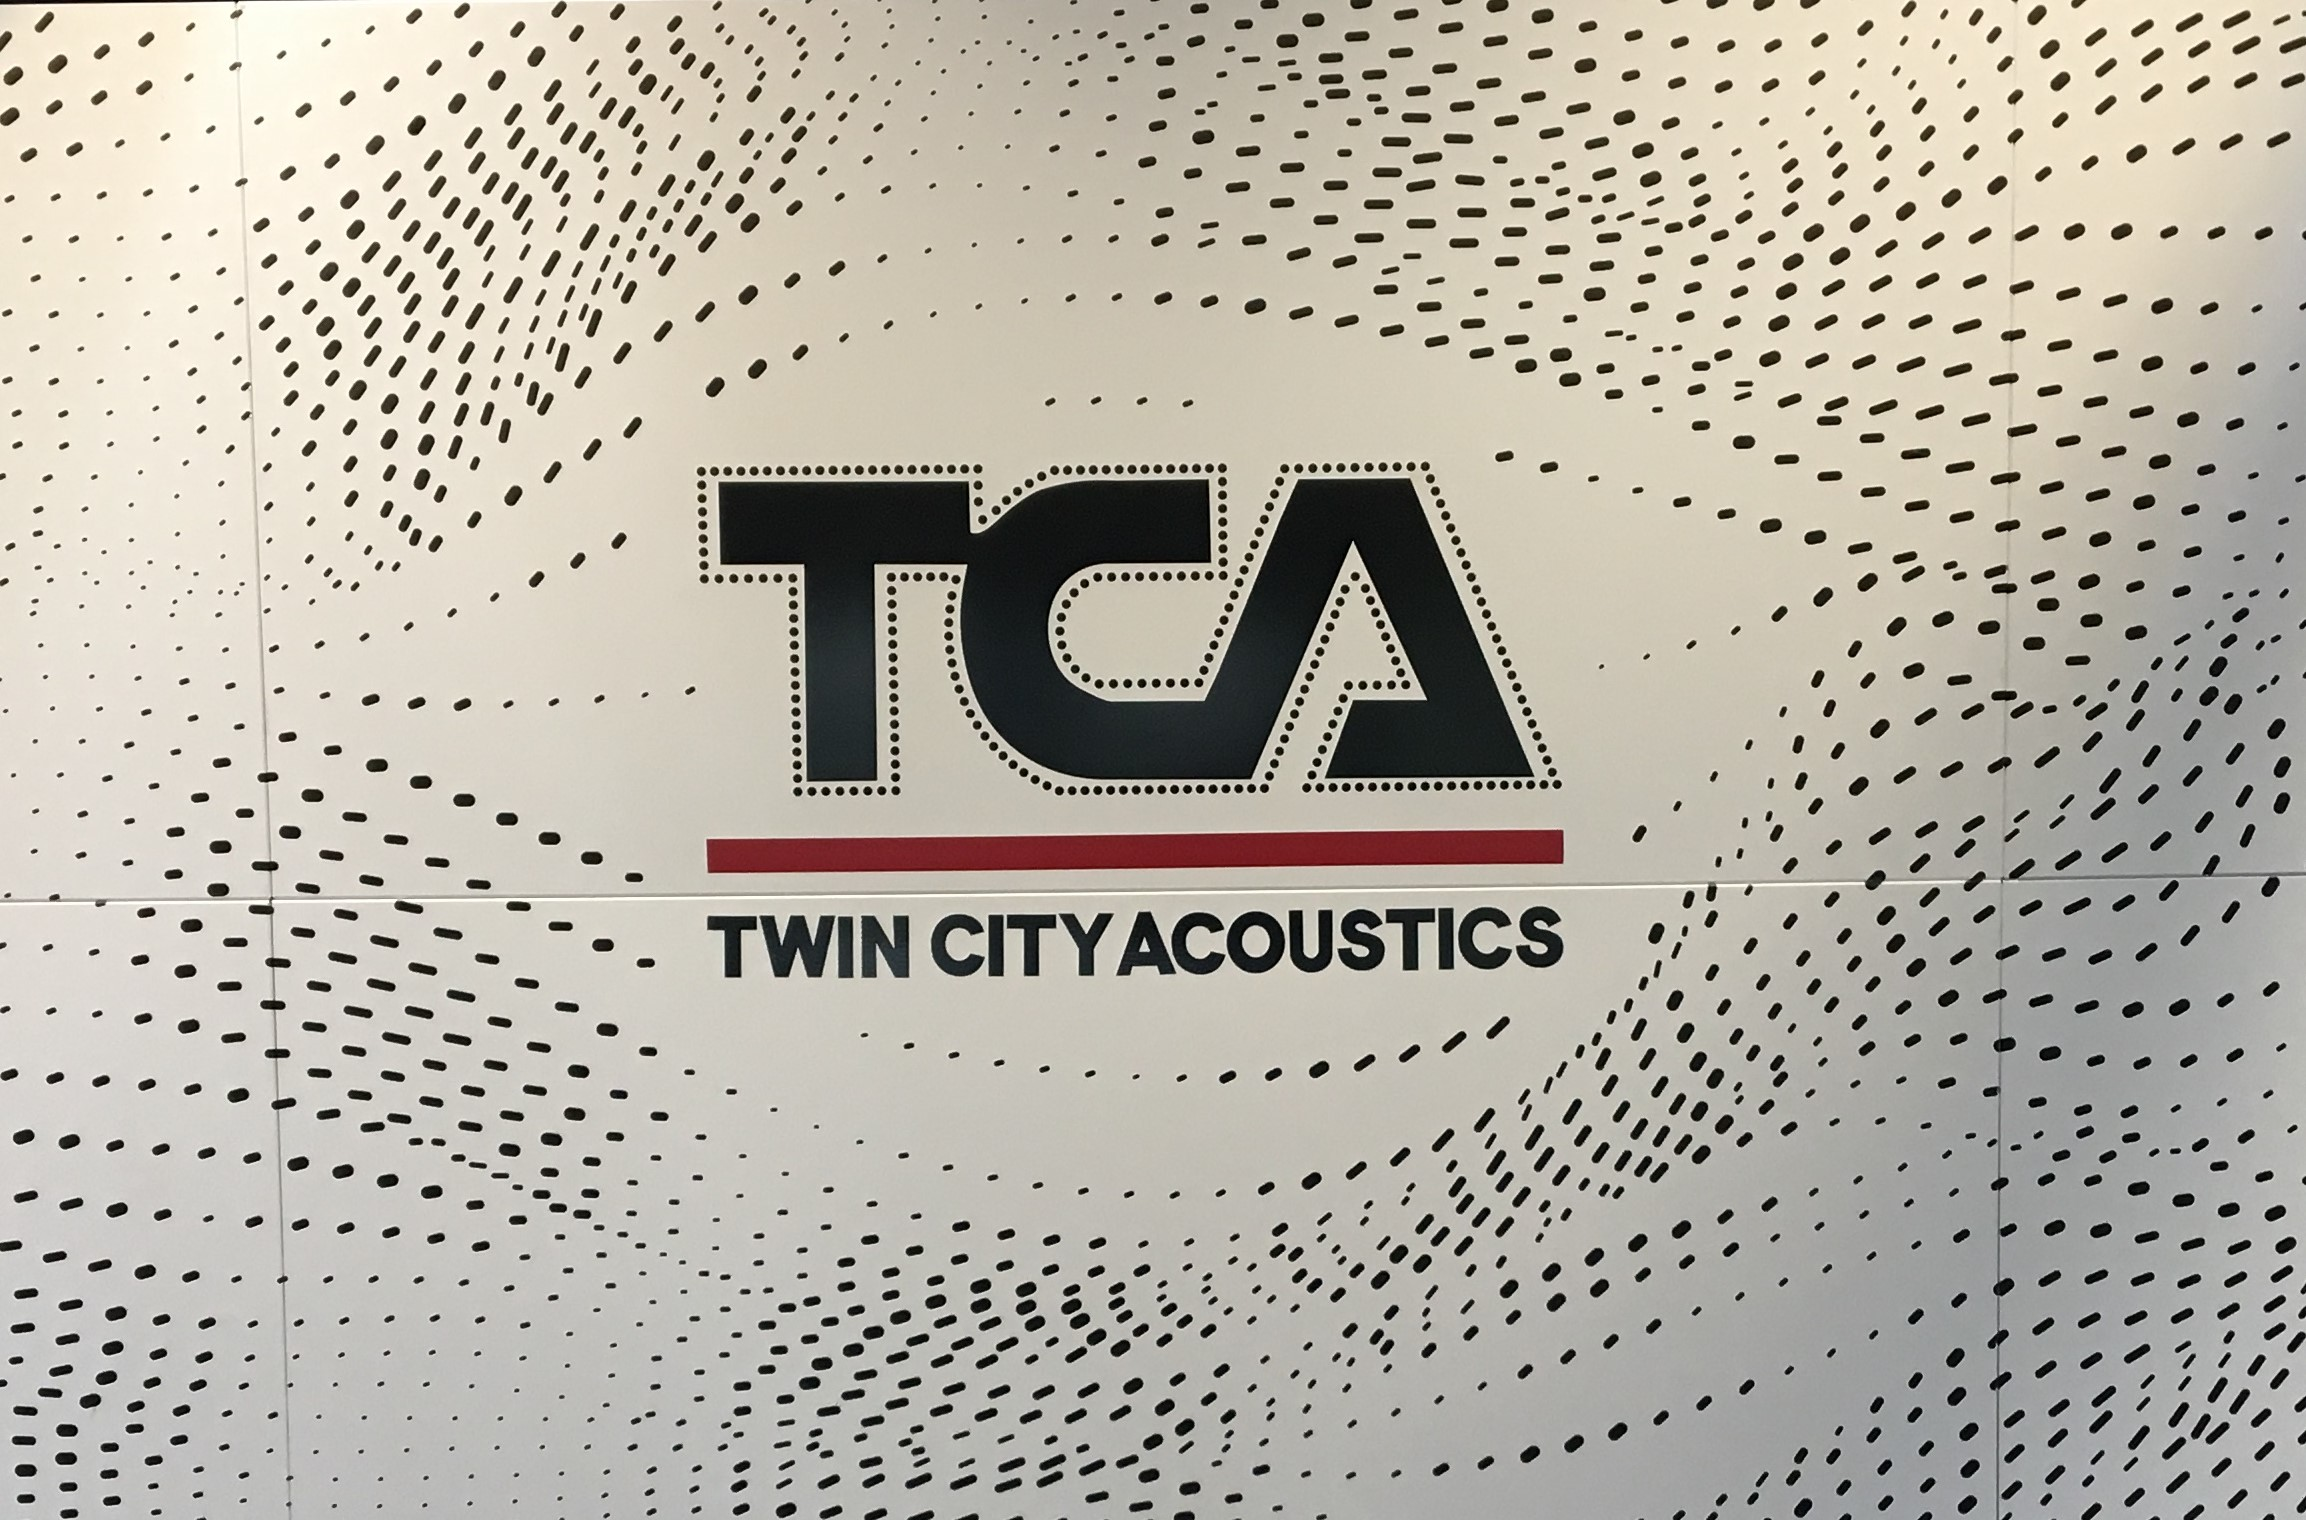 Twin City Acoustics